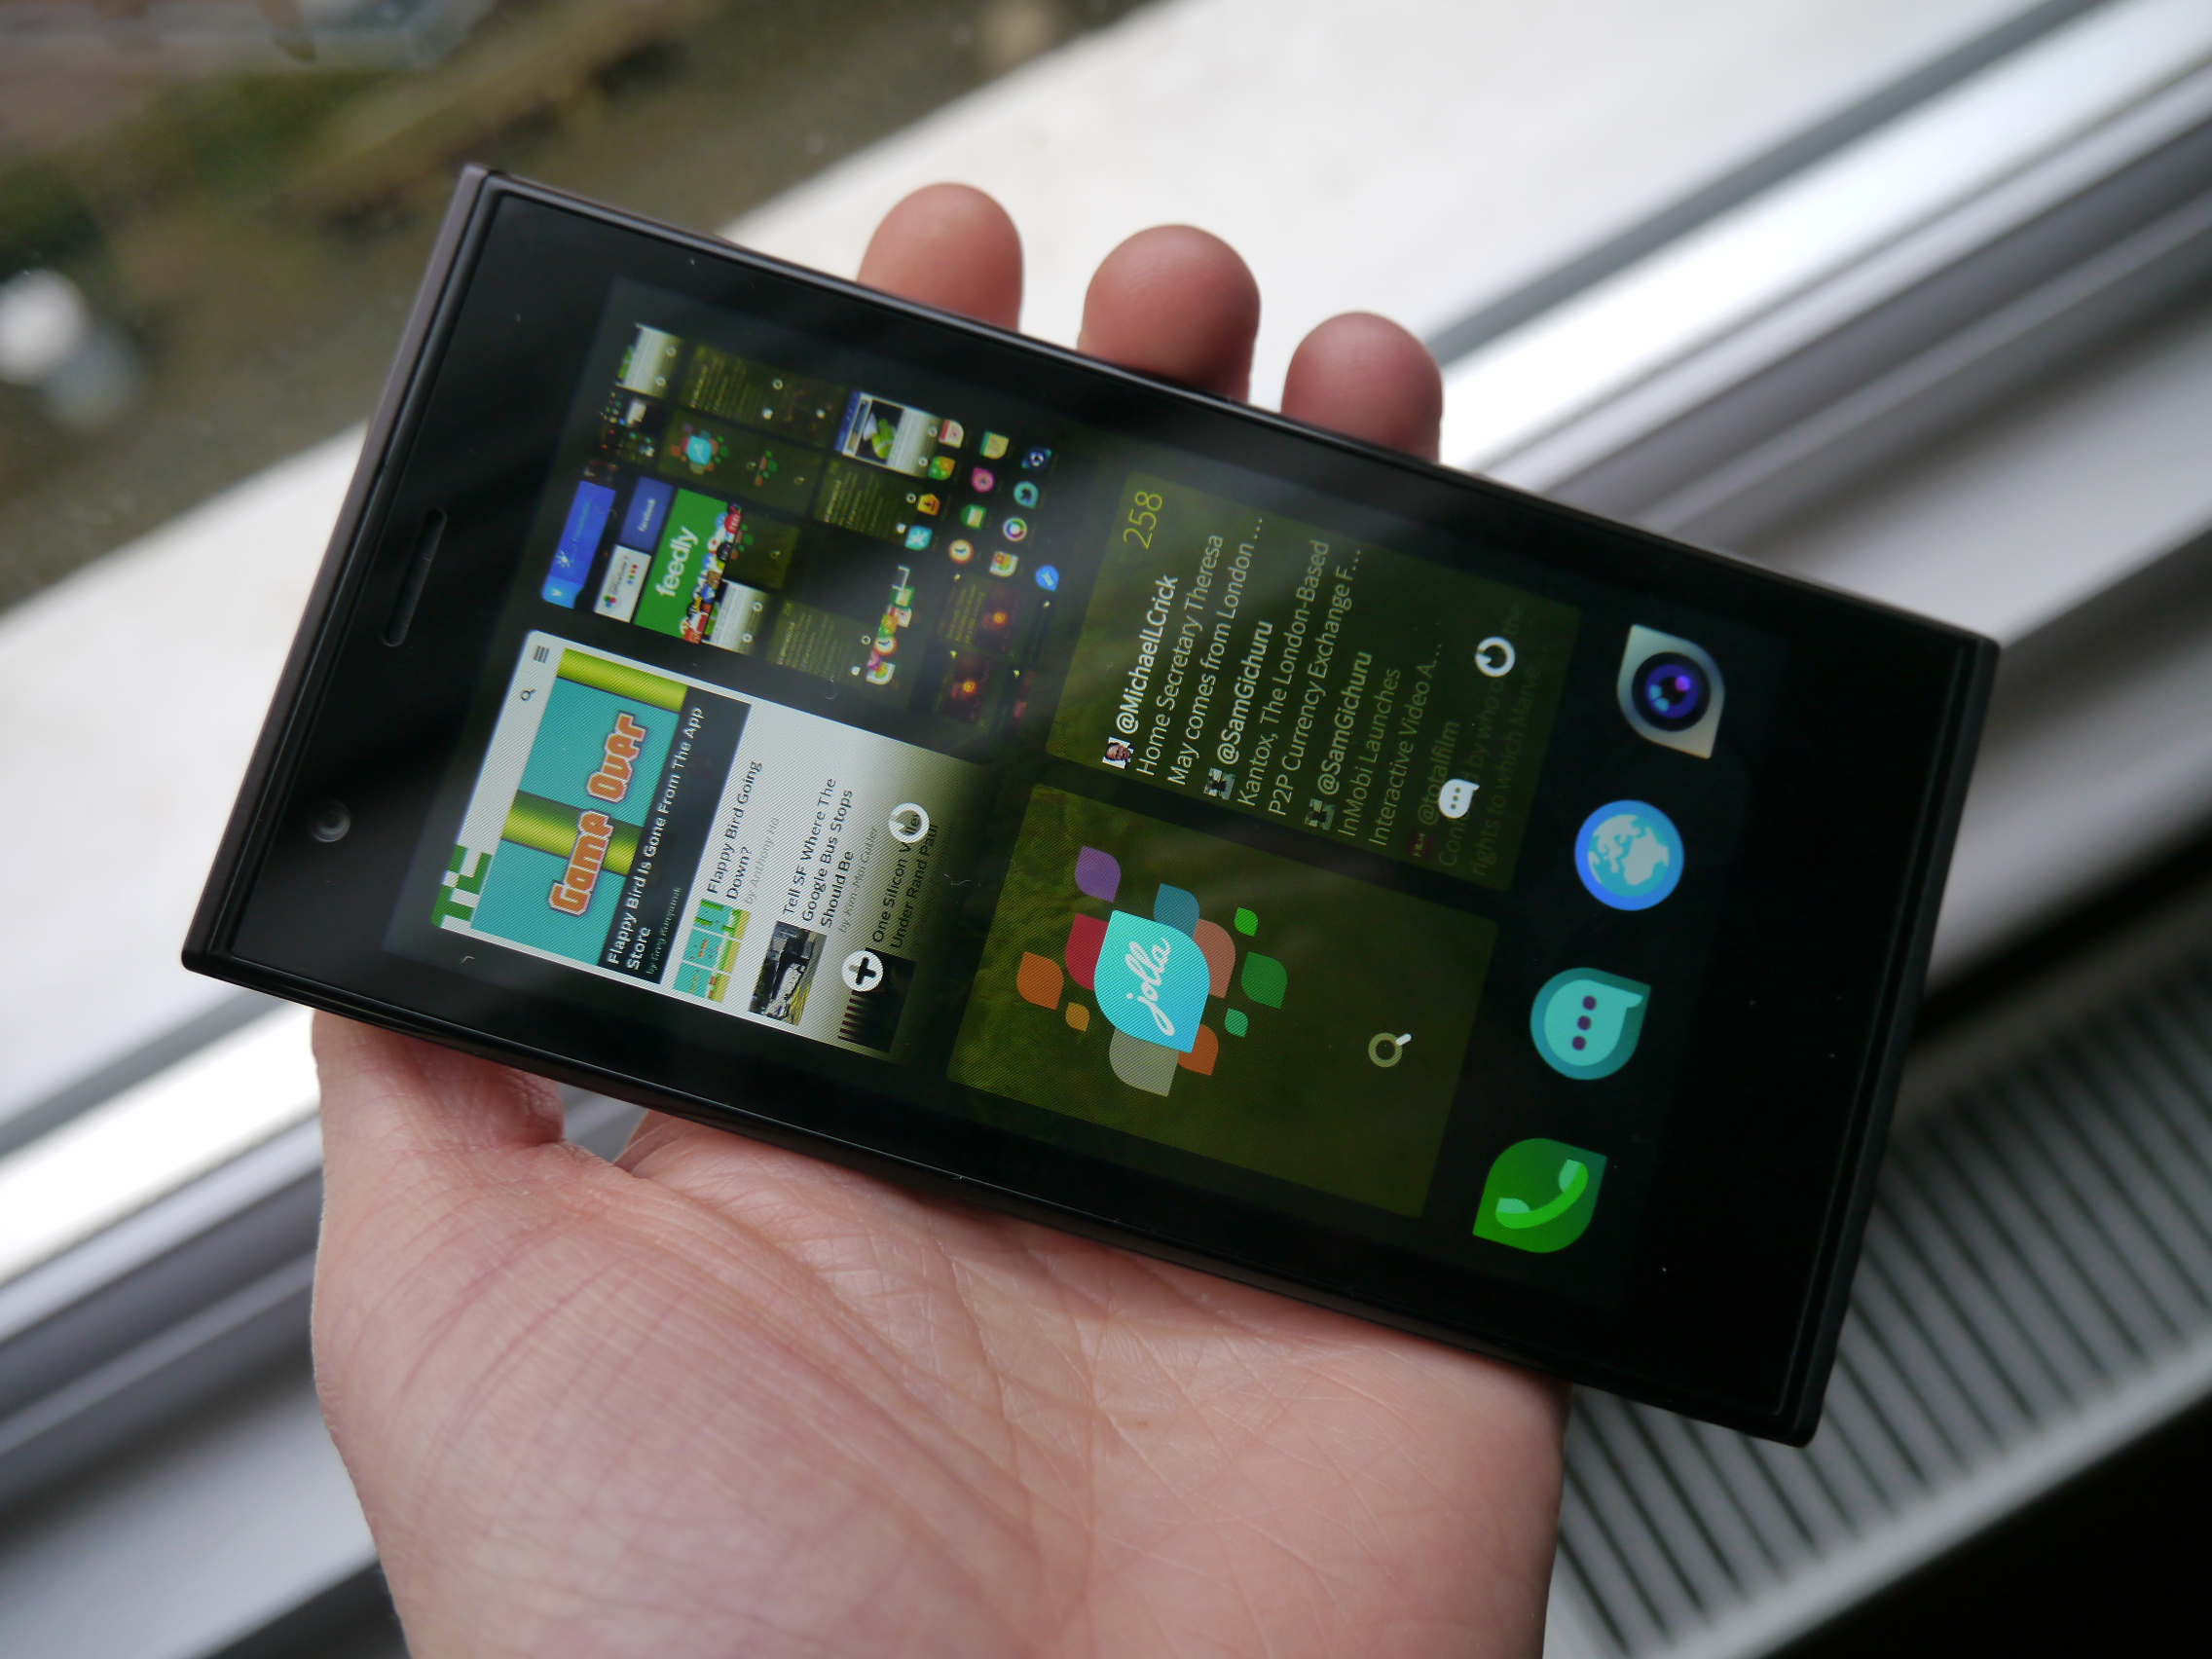 Review: Jolla Phone Has Design Flare But Sailfish's Waters Are